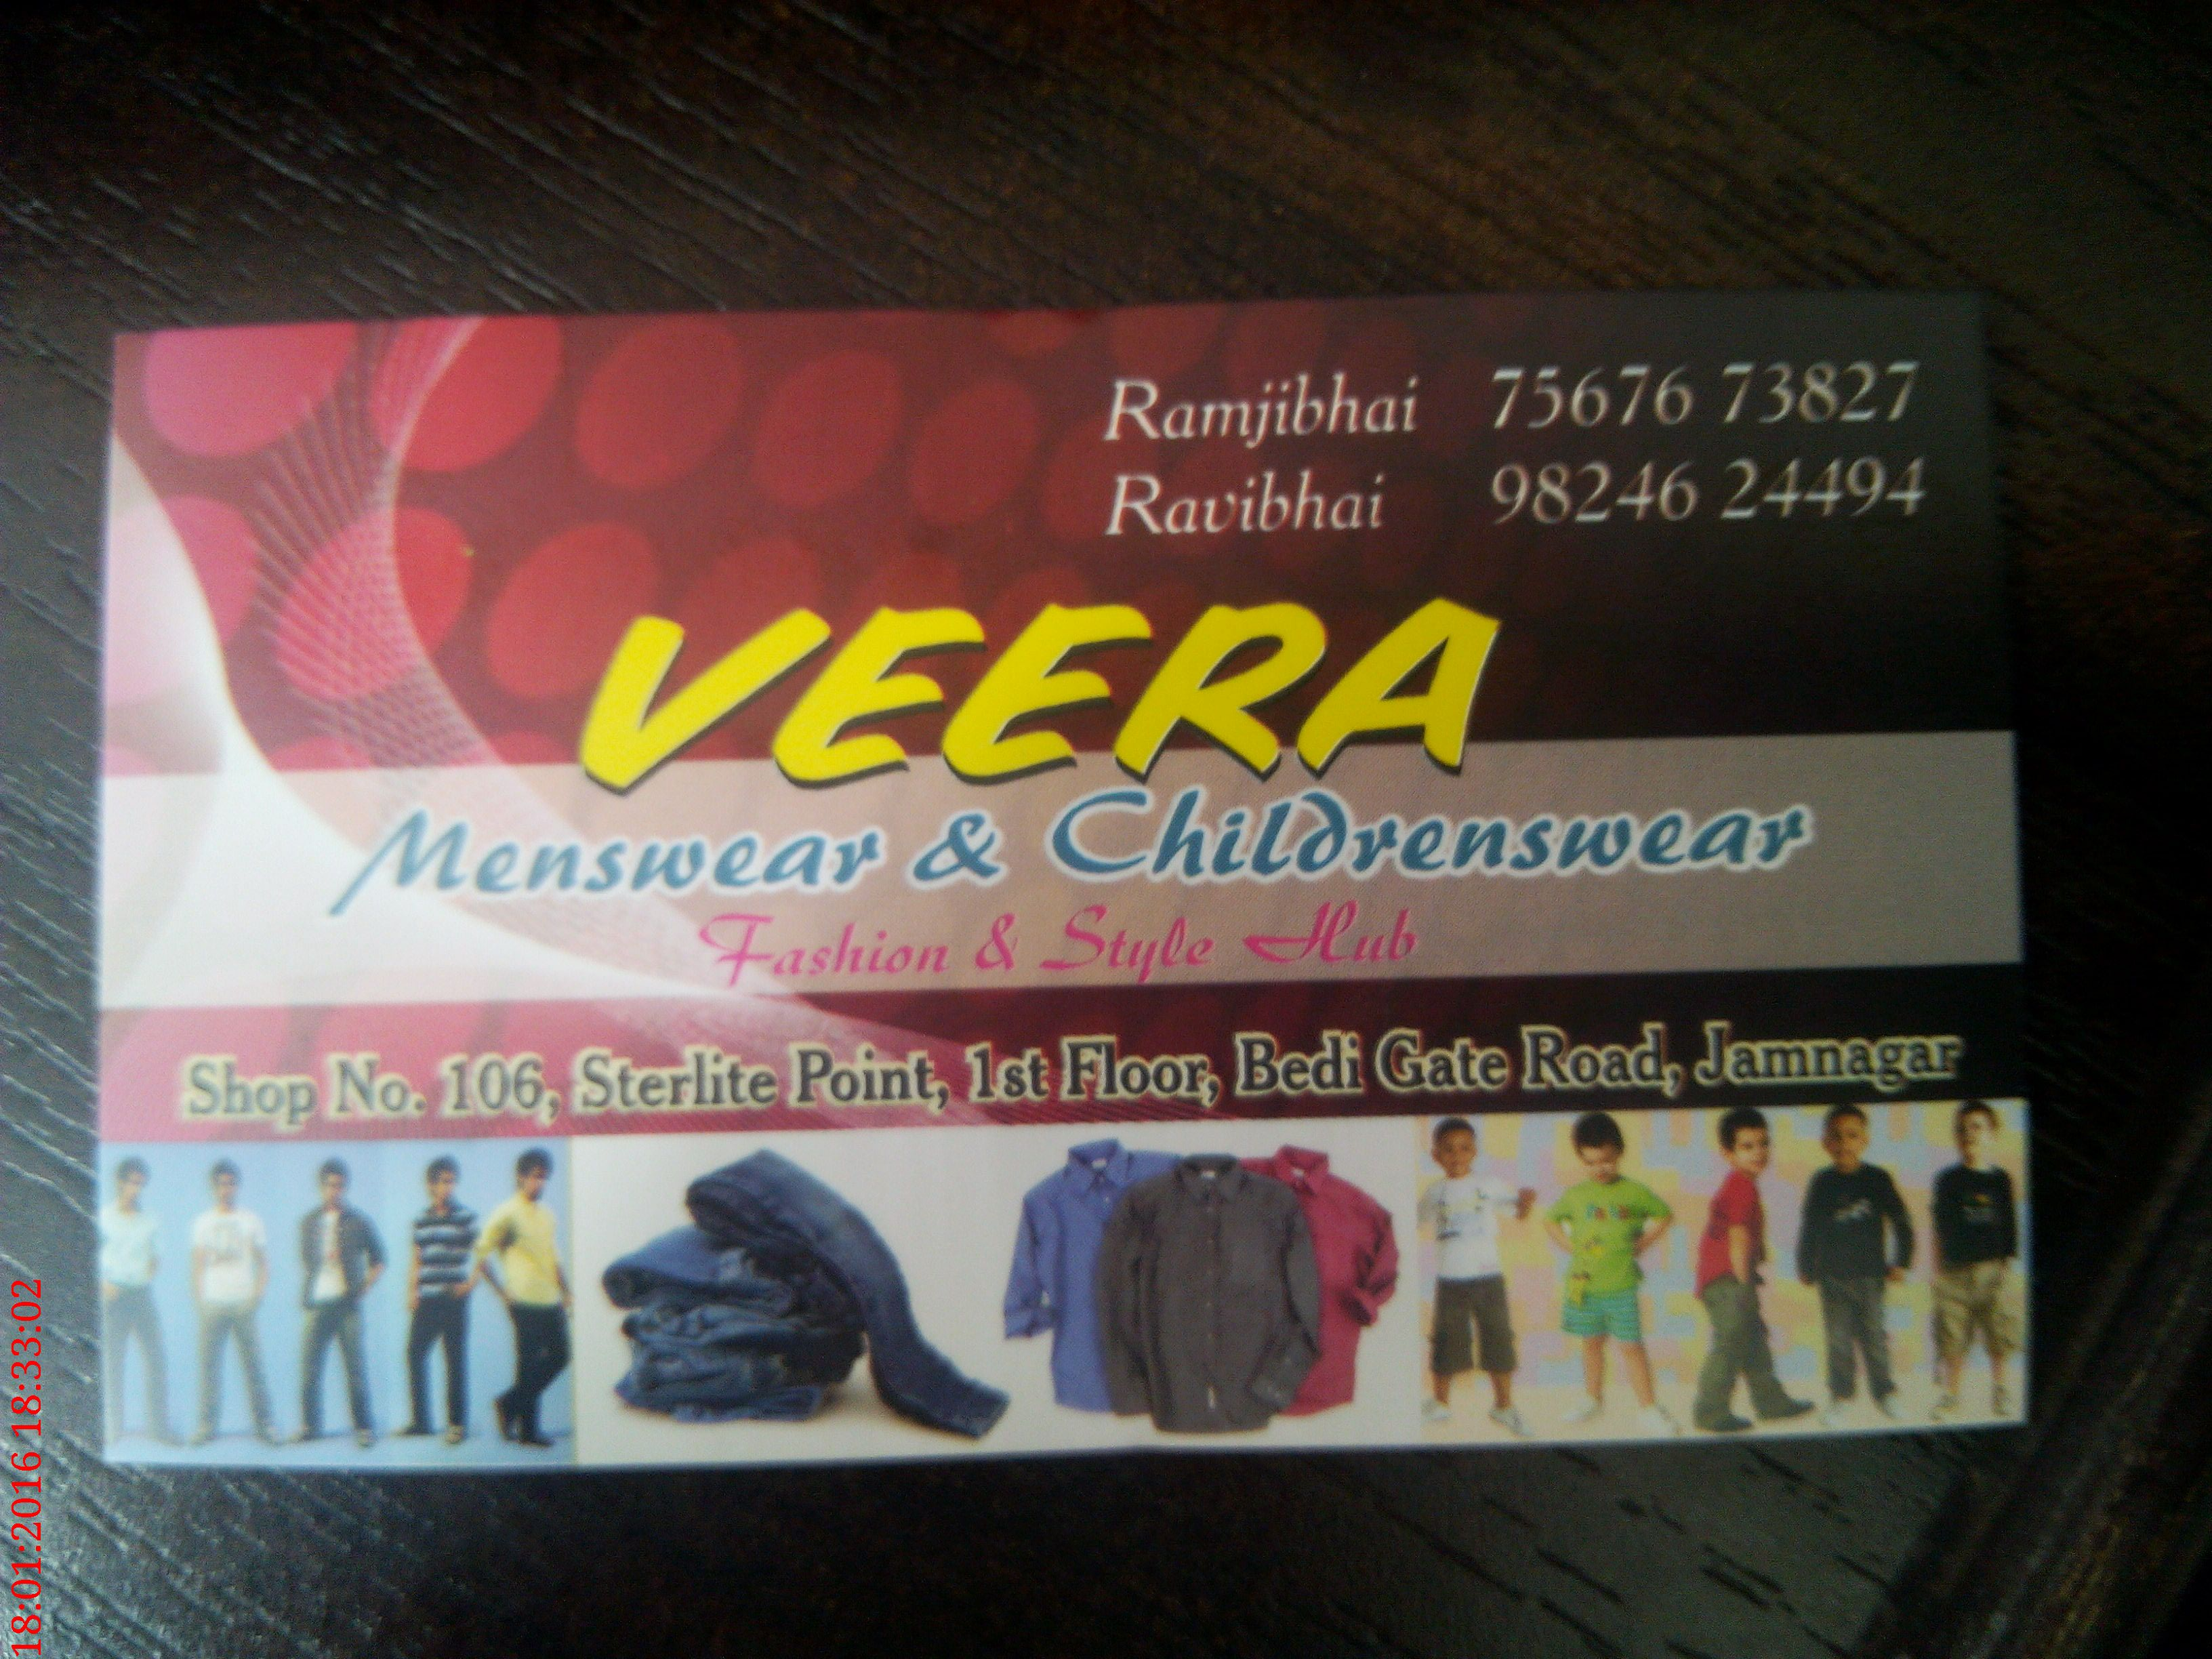 Veera Menswear & Childrenswear